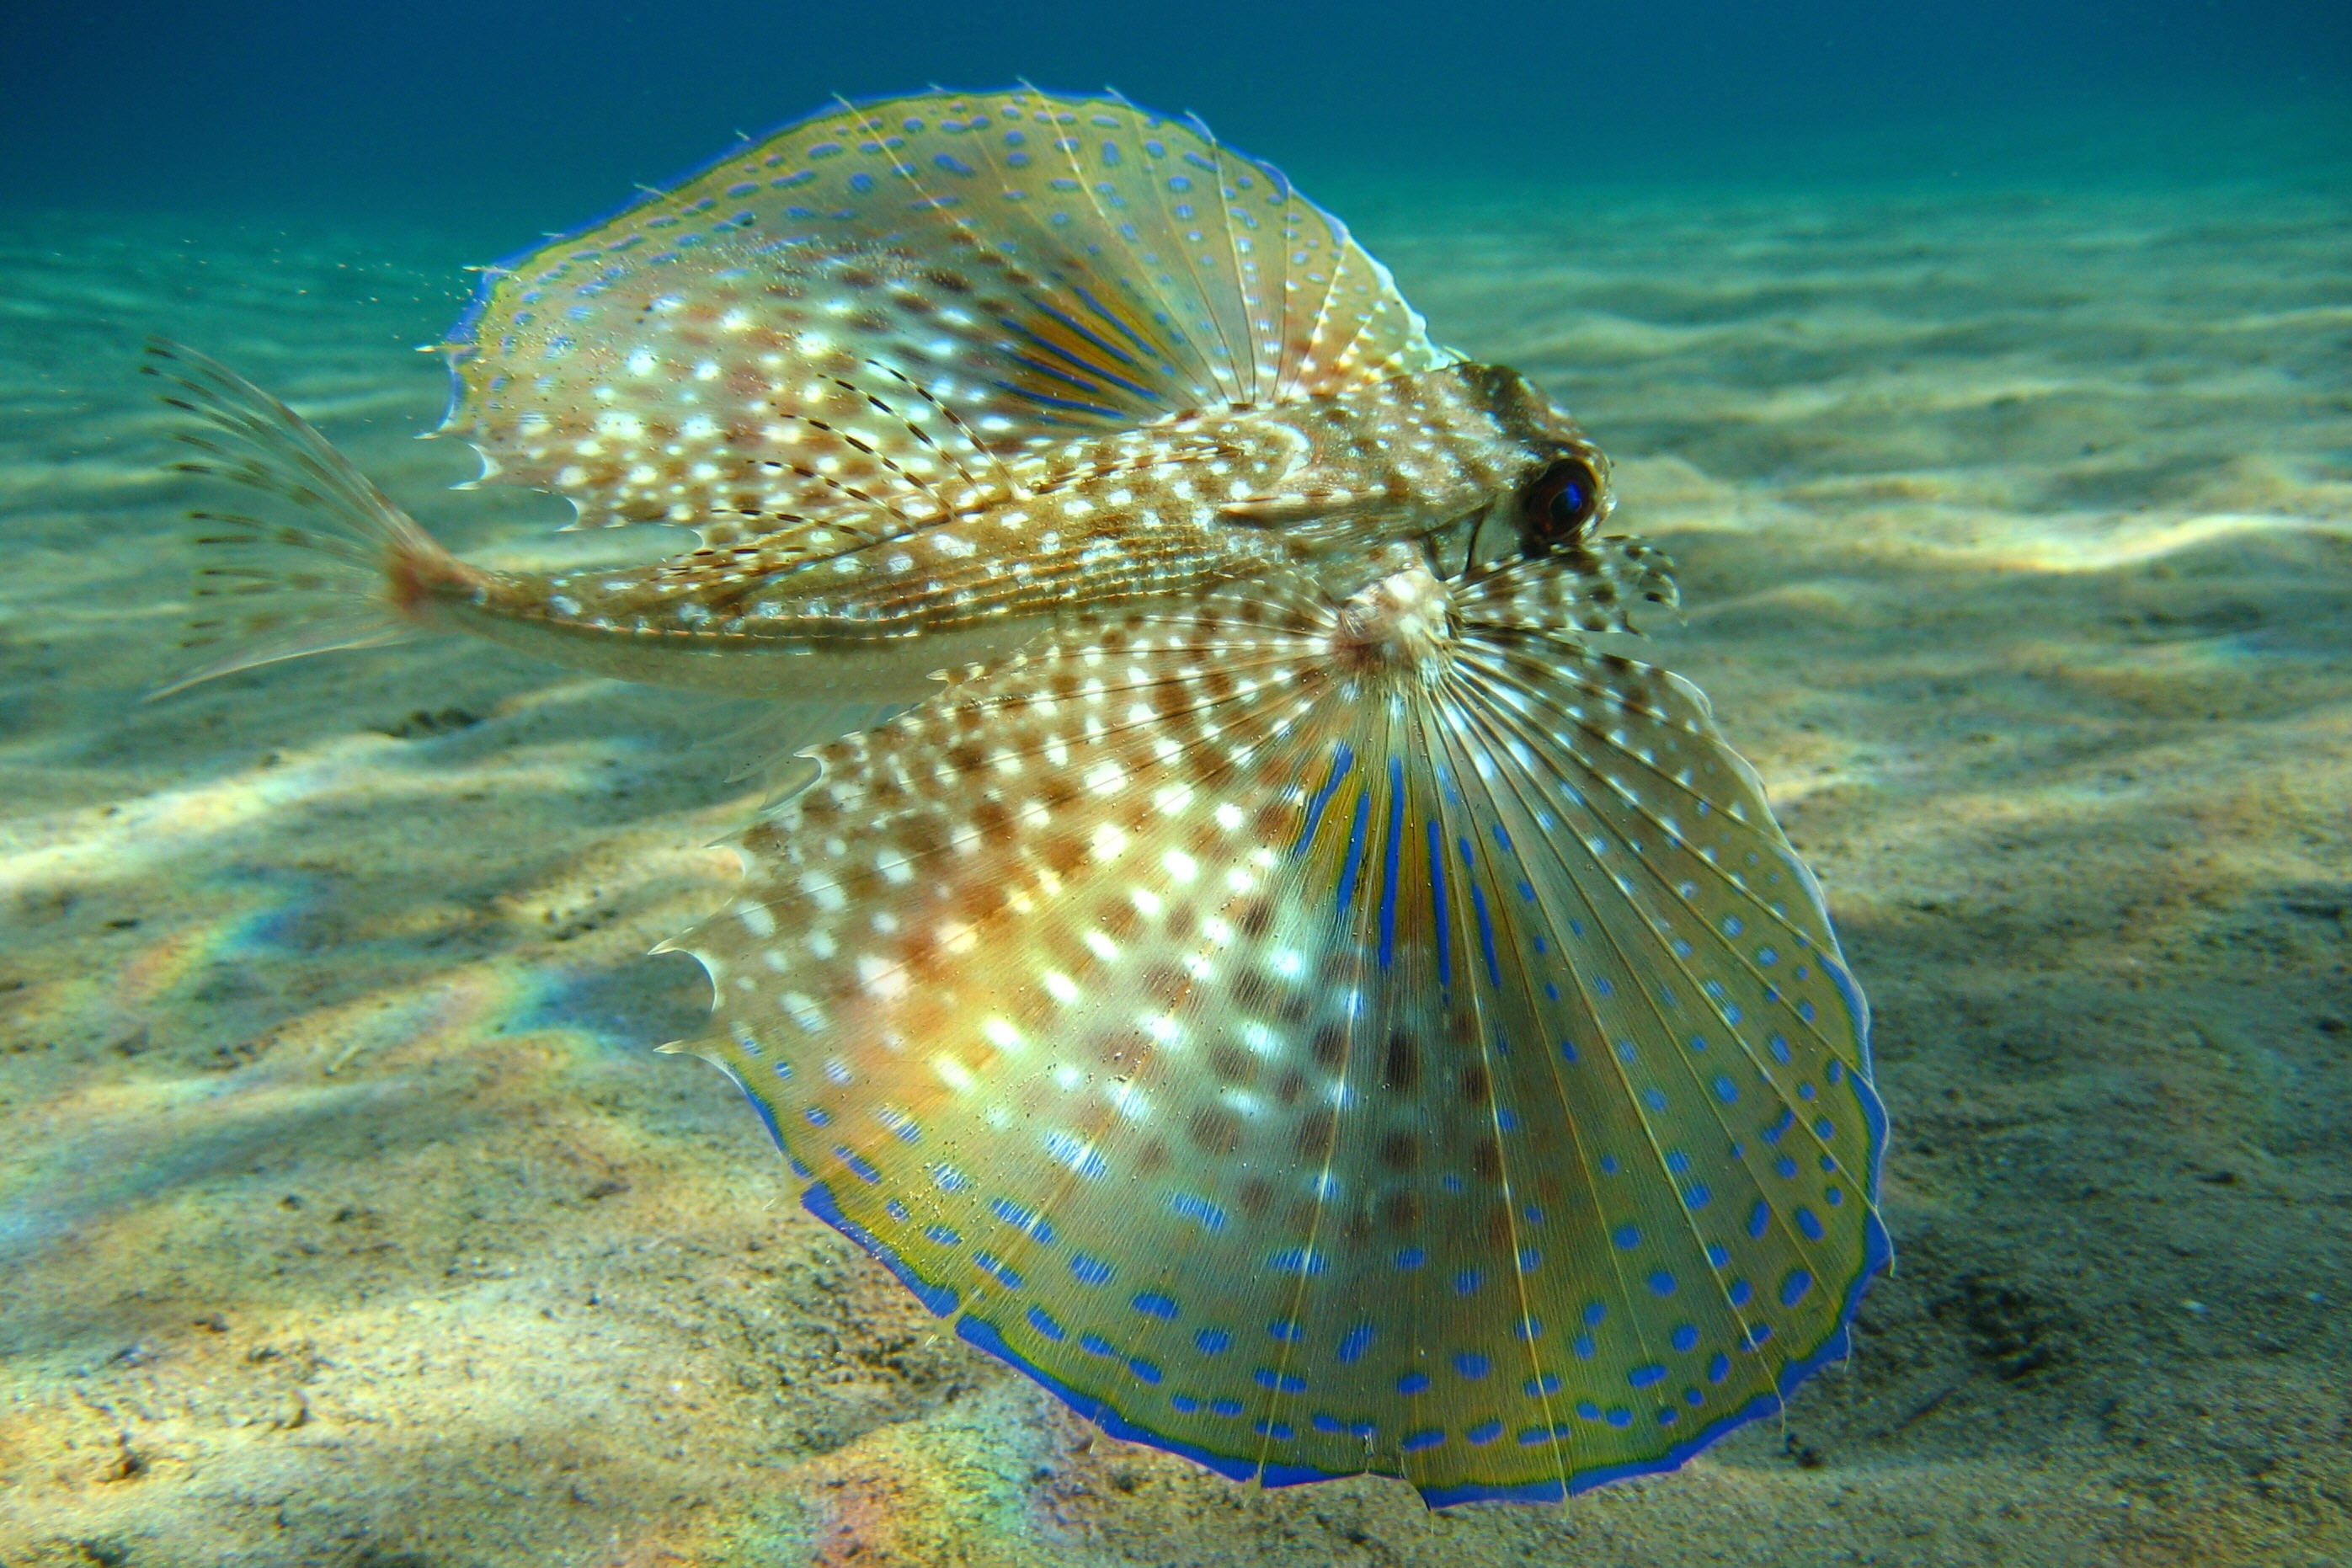 36276 download wallpaper Animals, Fishes screensavers and pictures for free